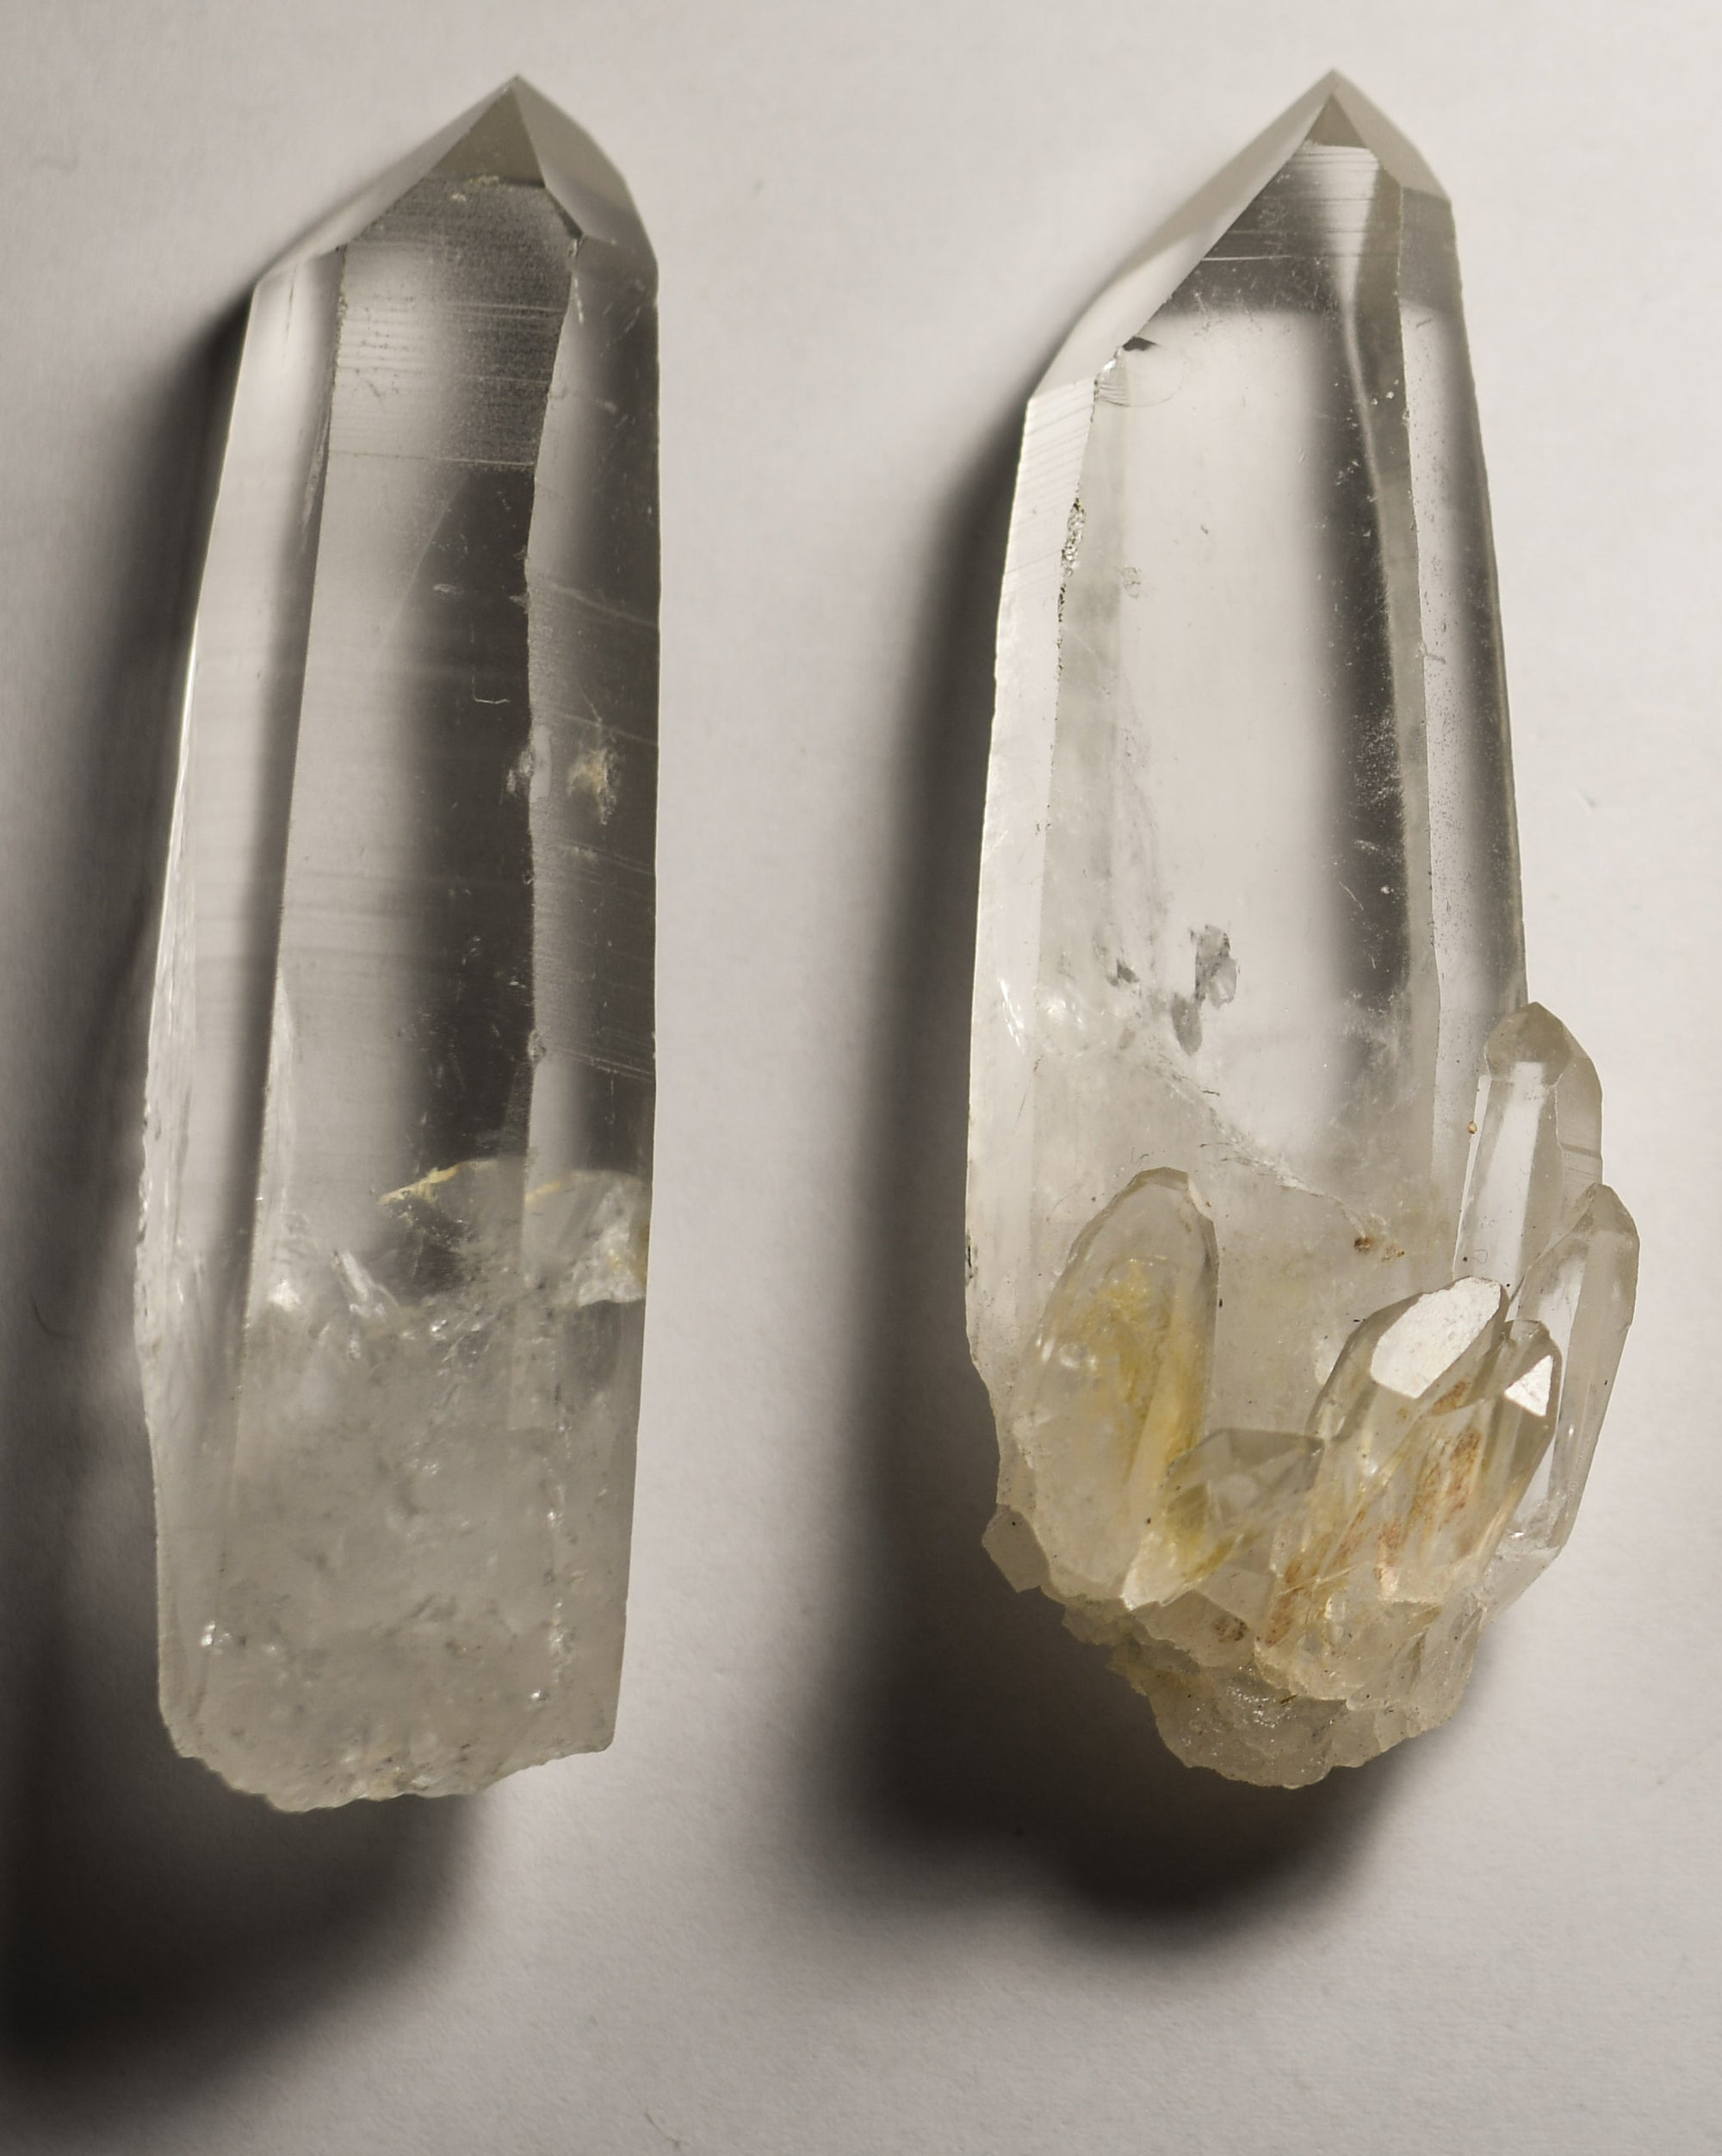 Crystal points on iron stand.